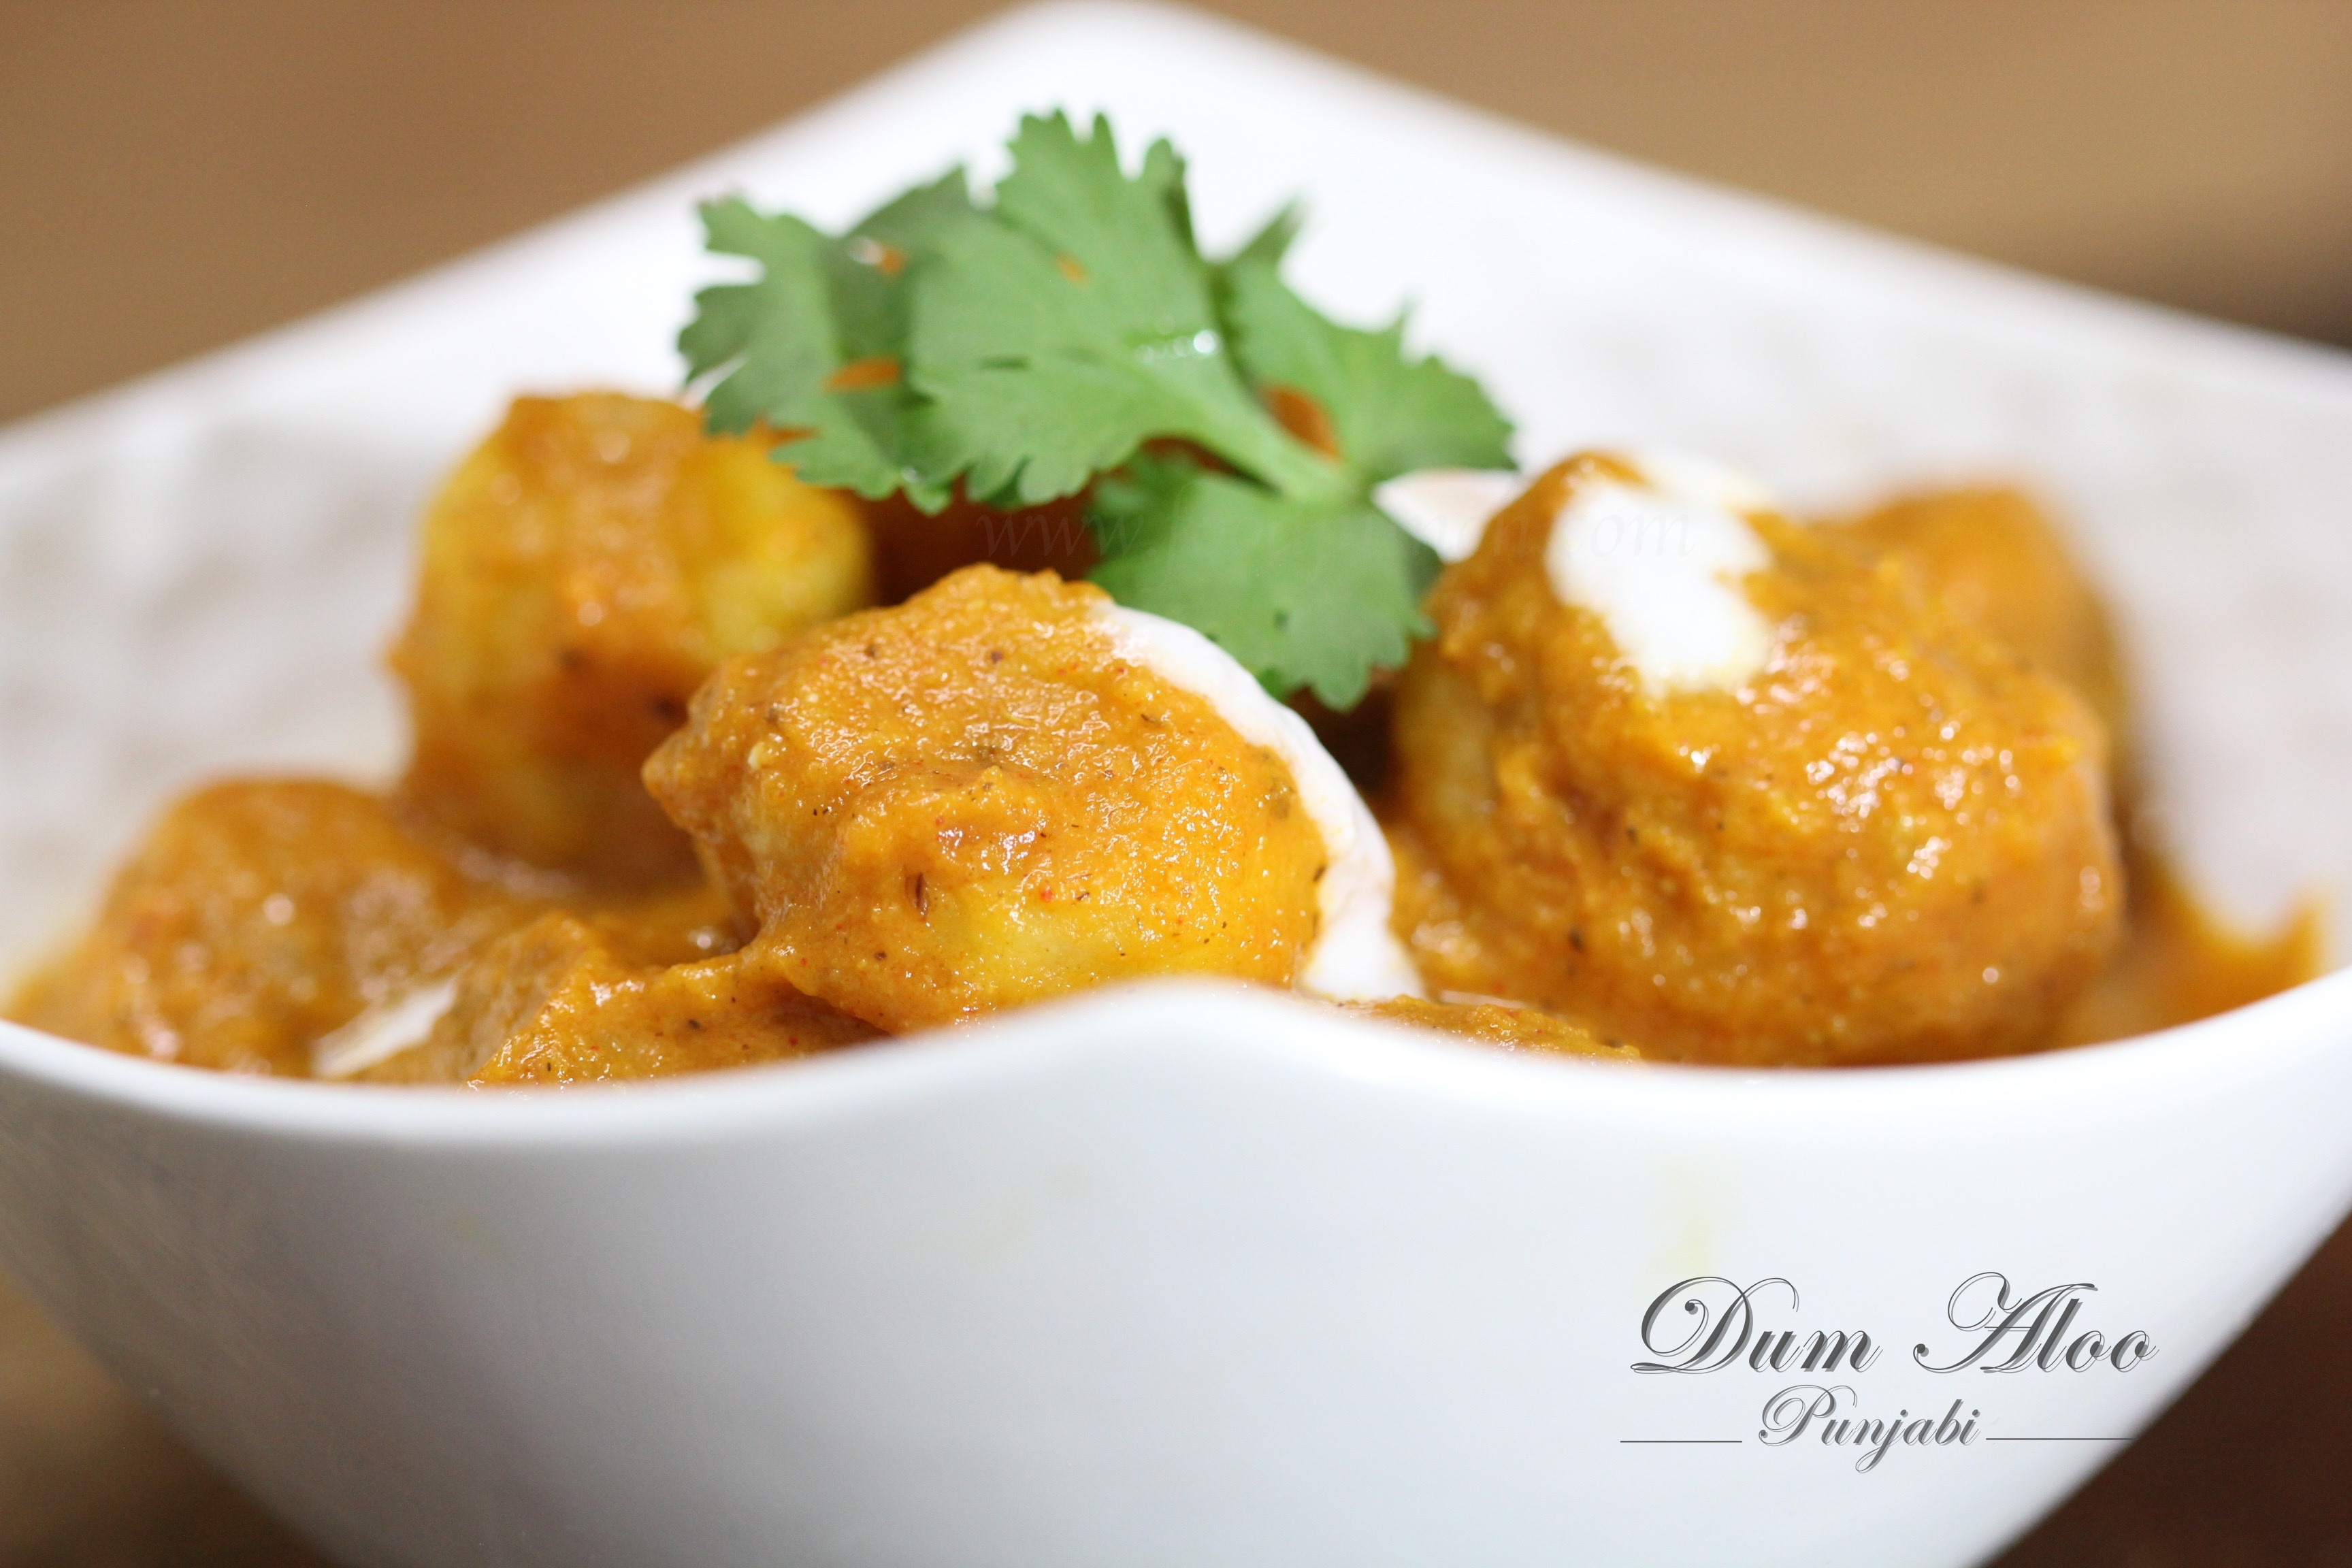 How to make Dum Aloo Punjabi gravy